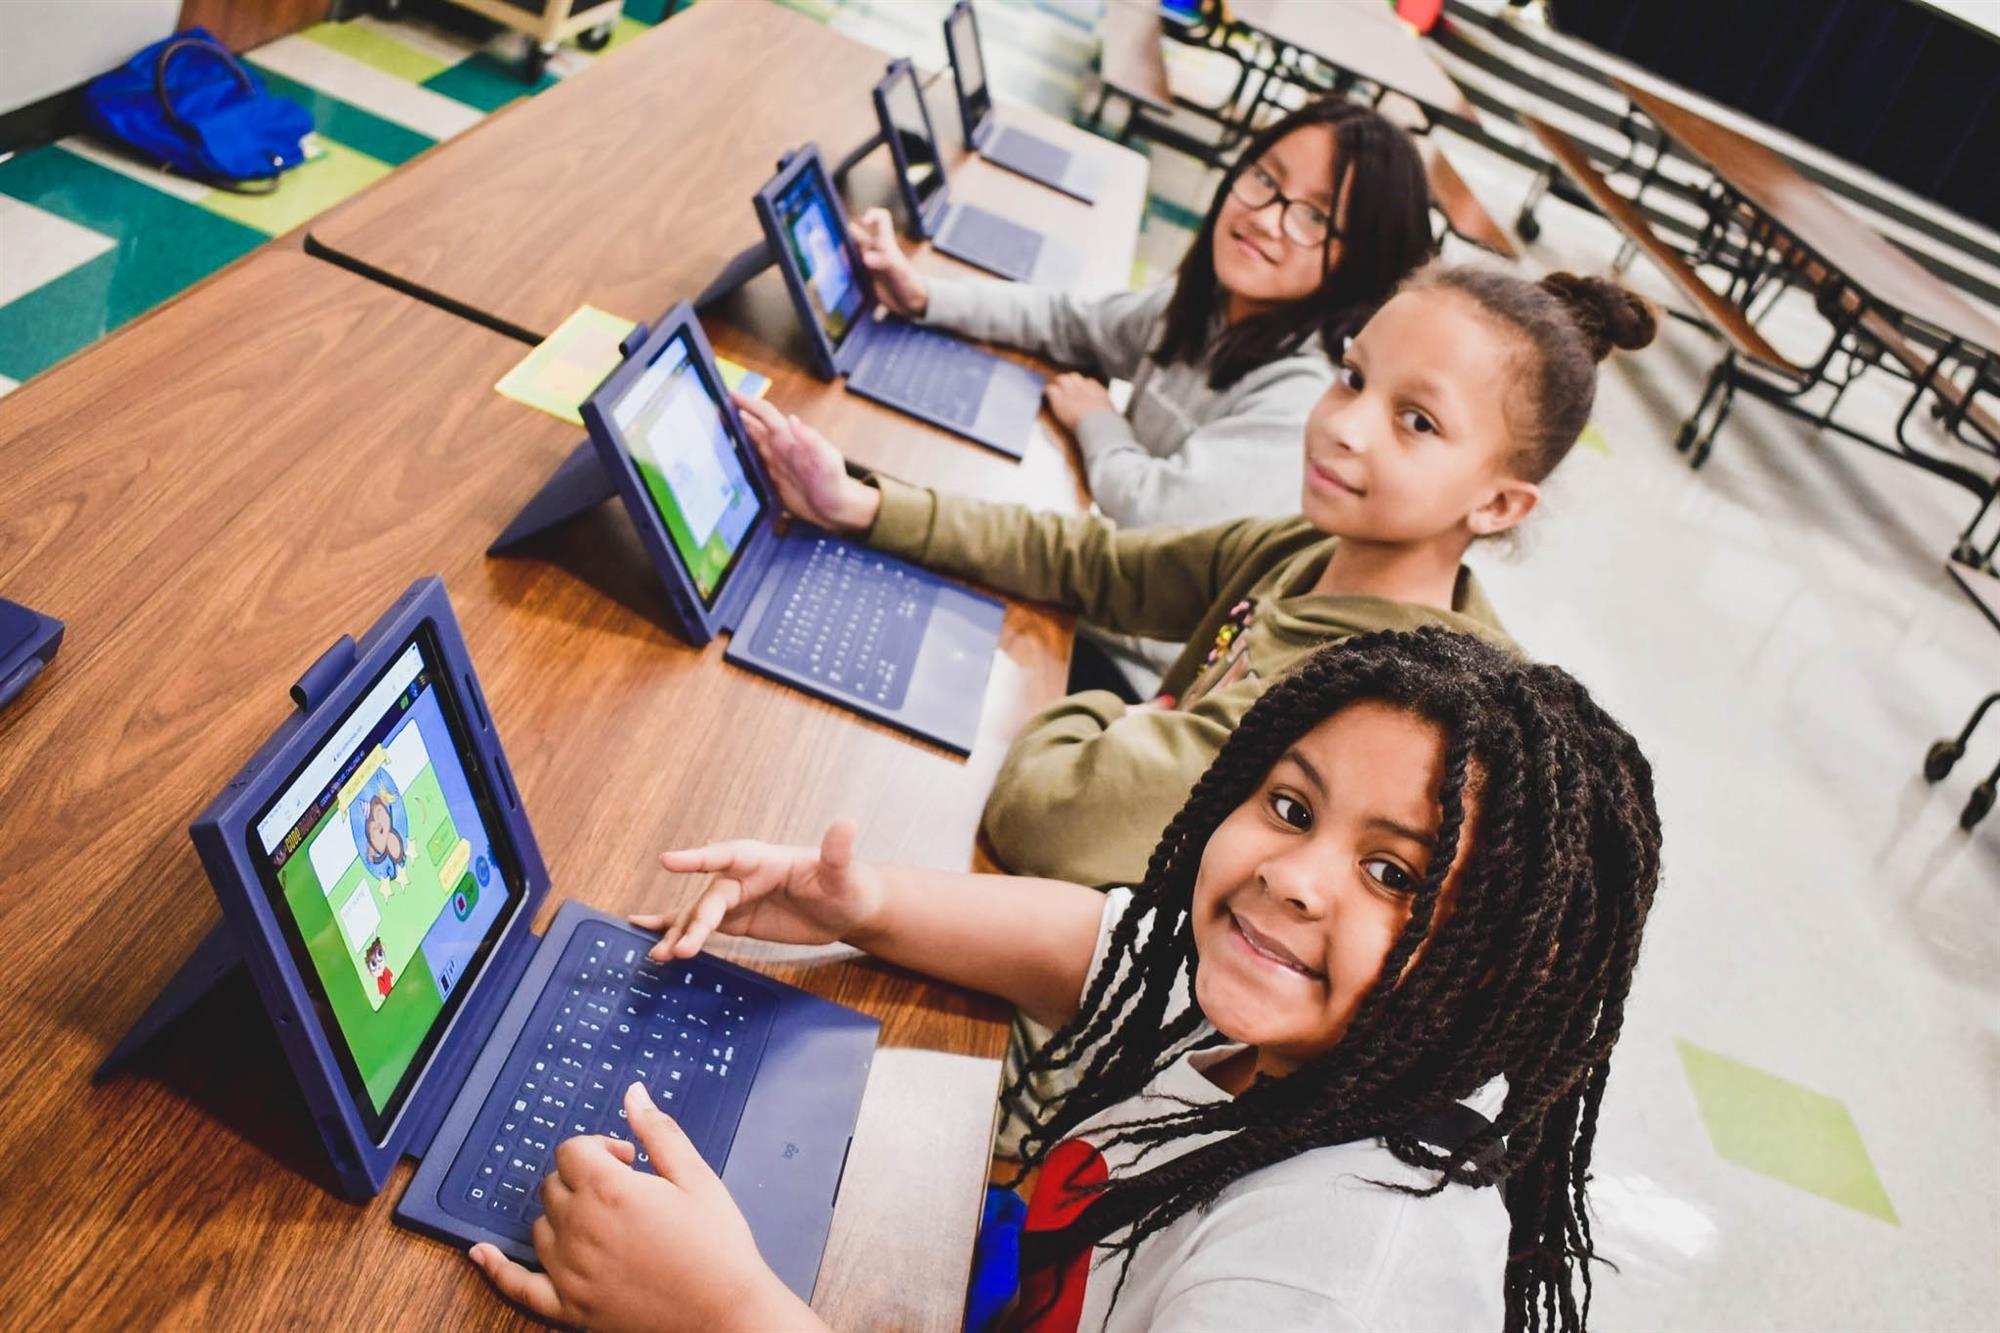 Students smile at tablet games